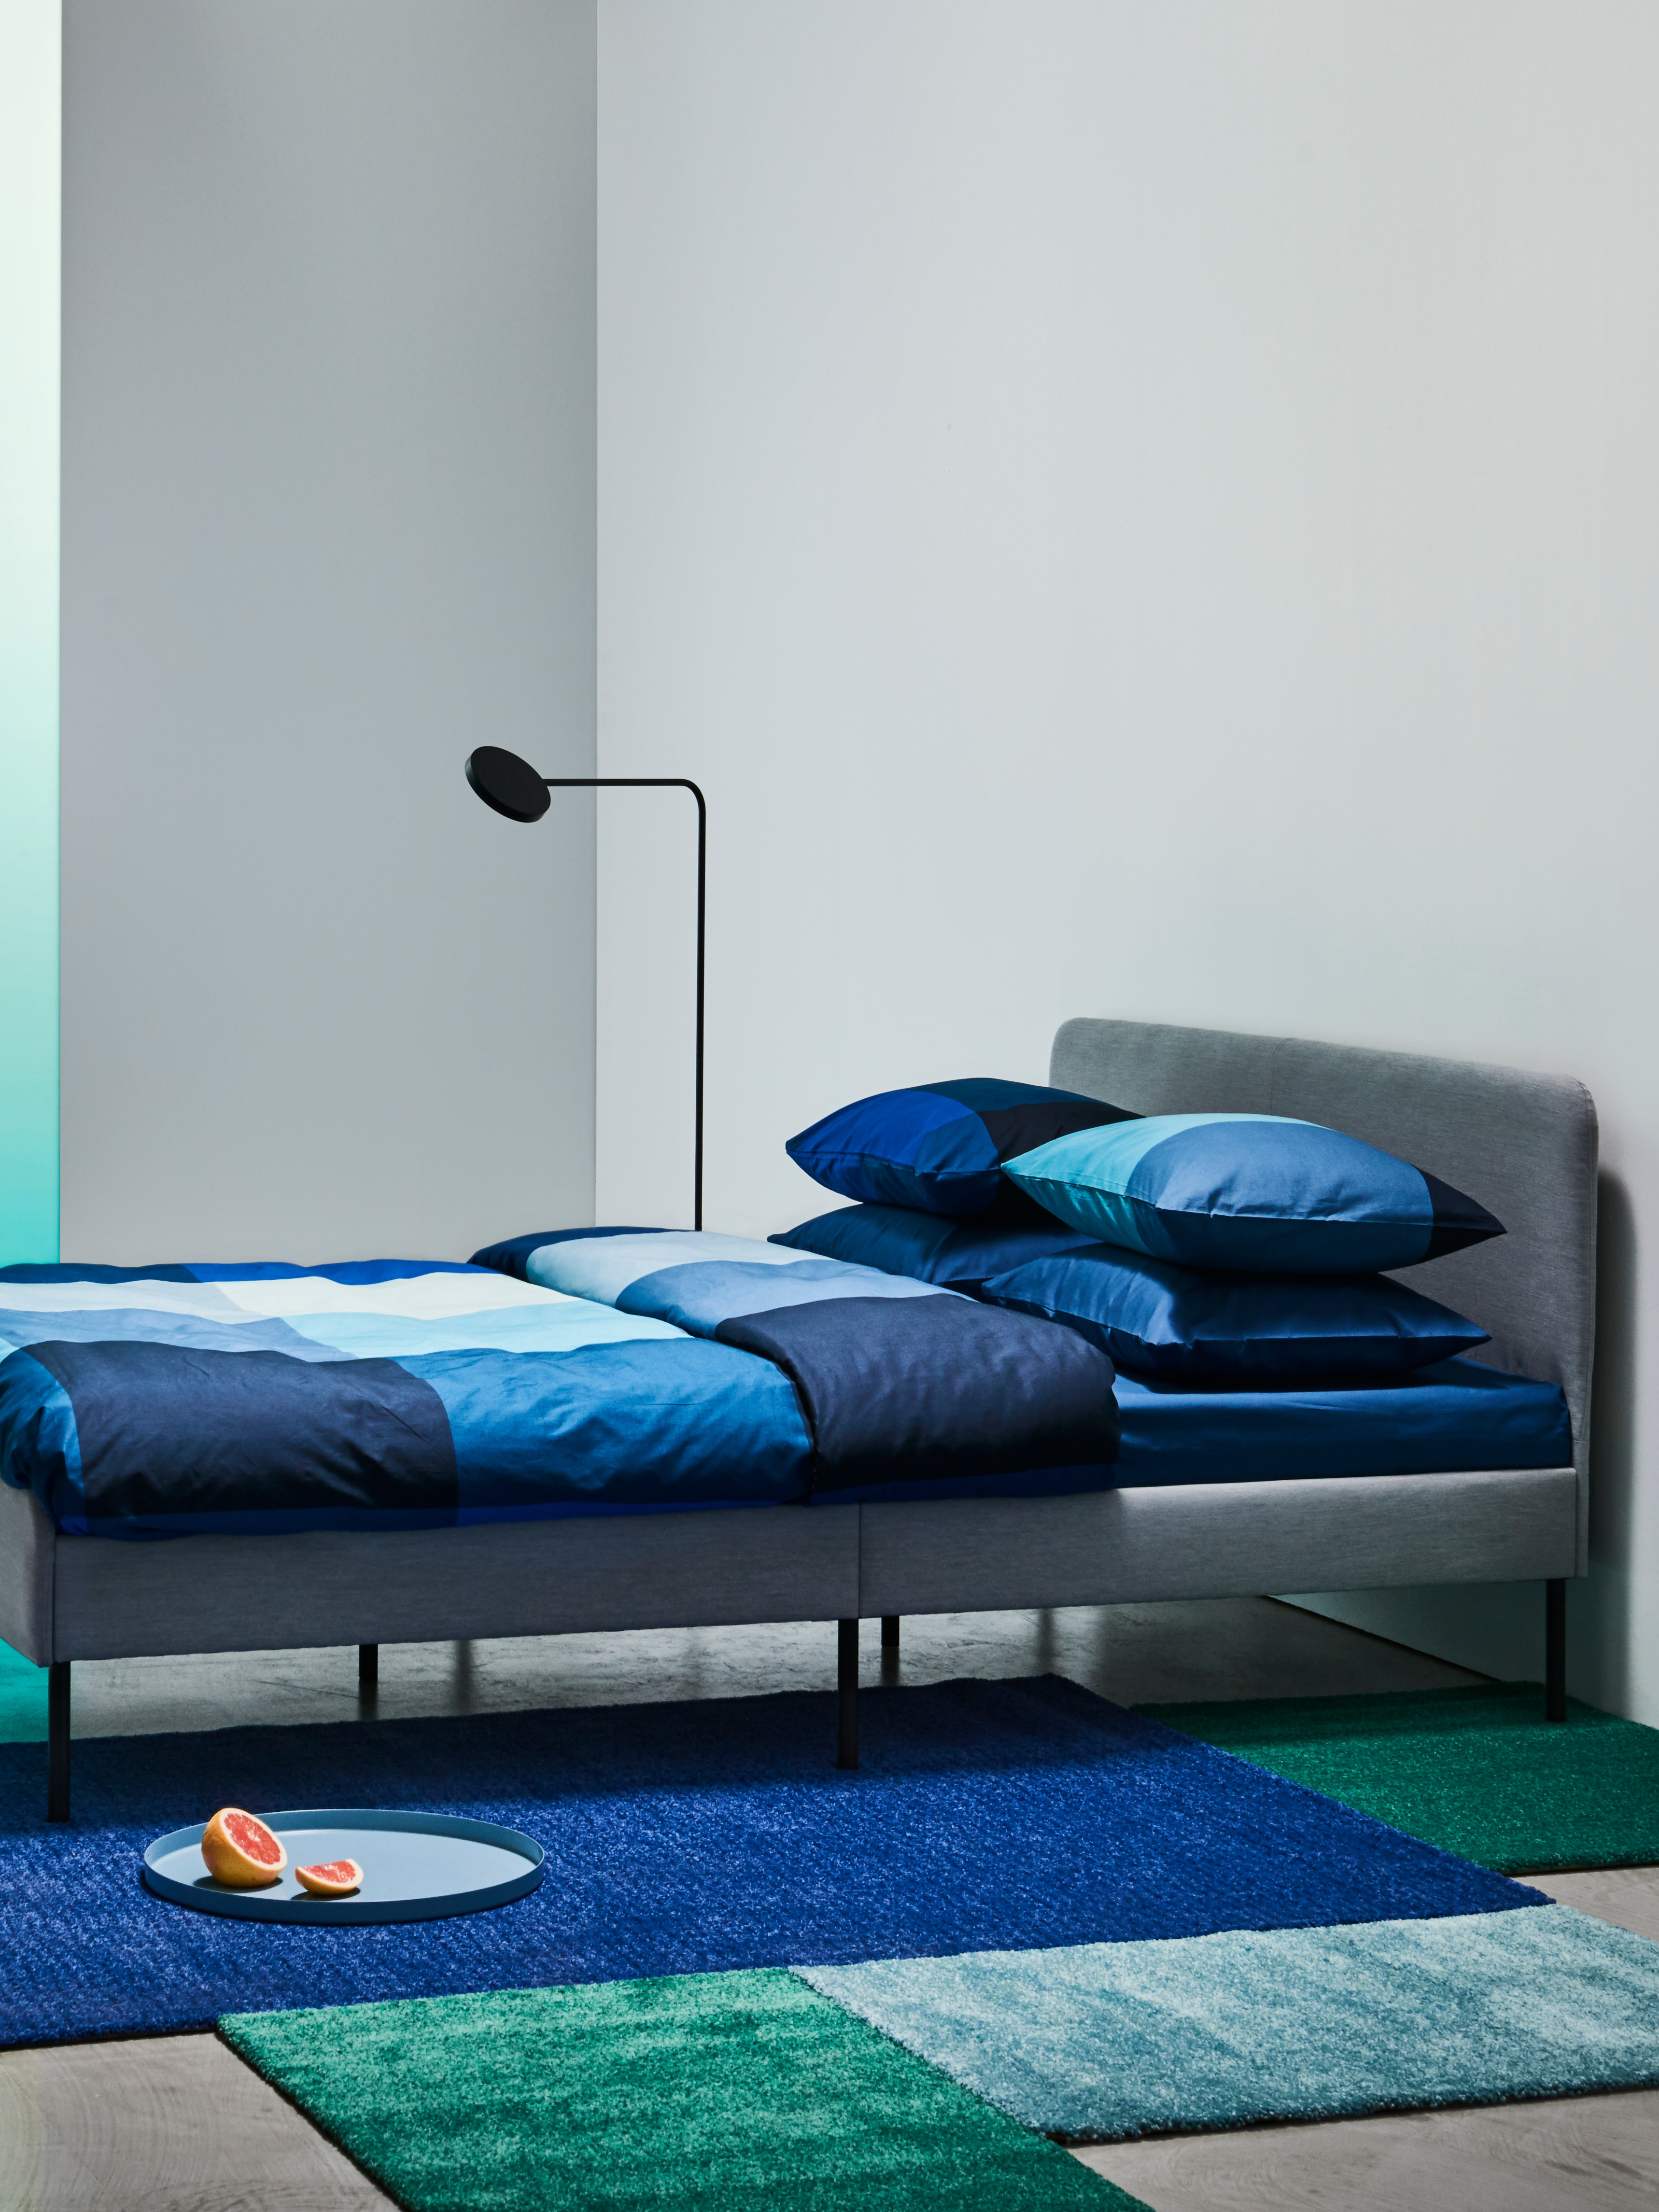 A SLATTUM upholstered bed frame in grey, with bedding in various shades of blue and a floor lamp beside the bed.